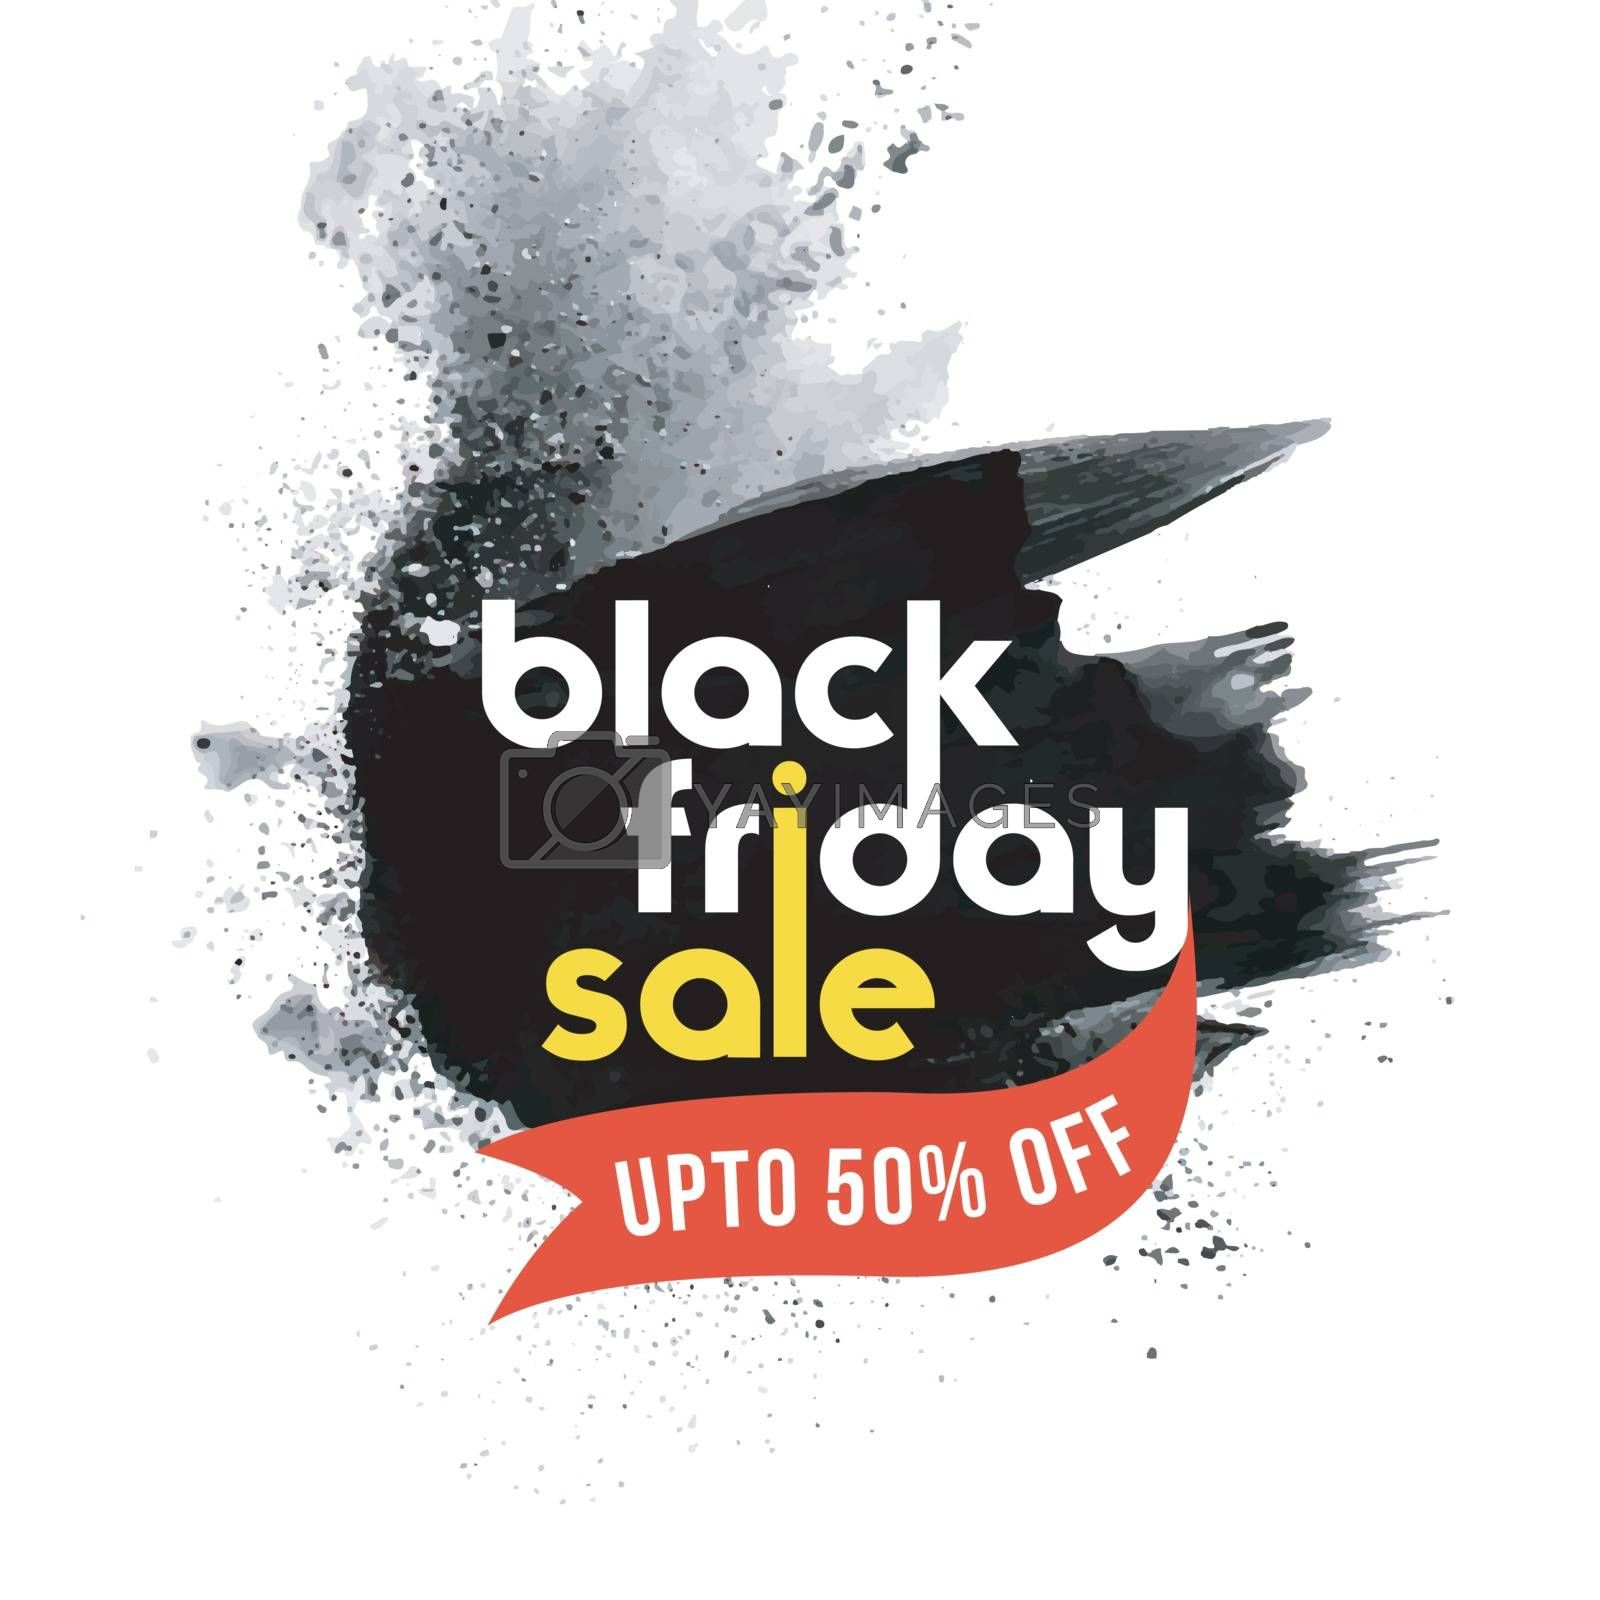 Creative advertising template design with 50% discount offer on Black Friday Sale.